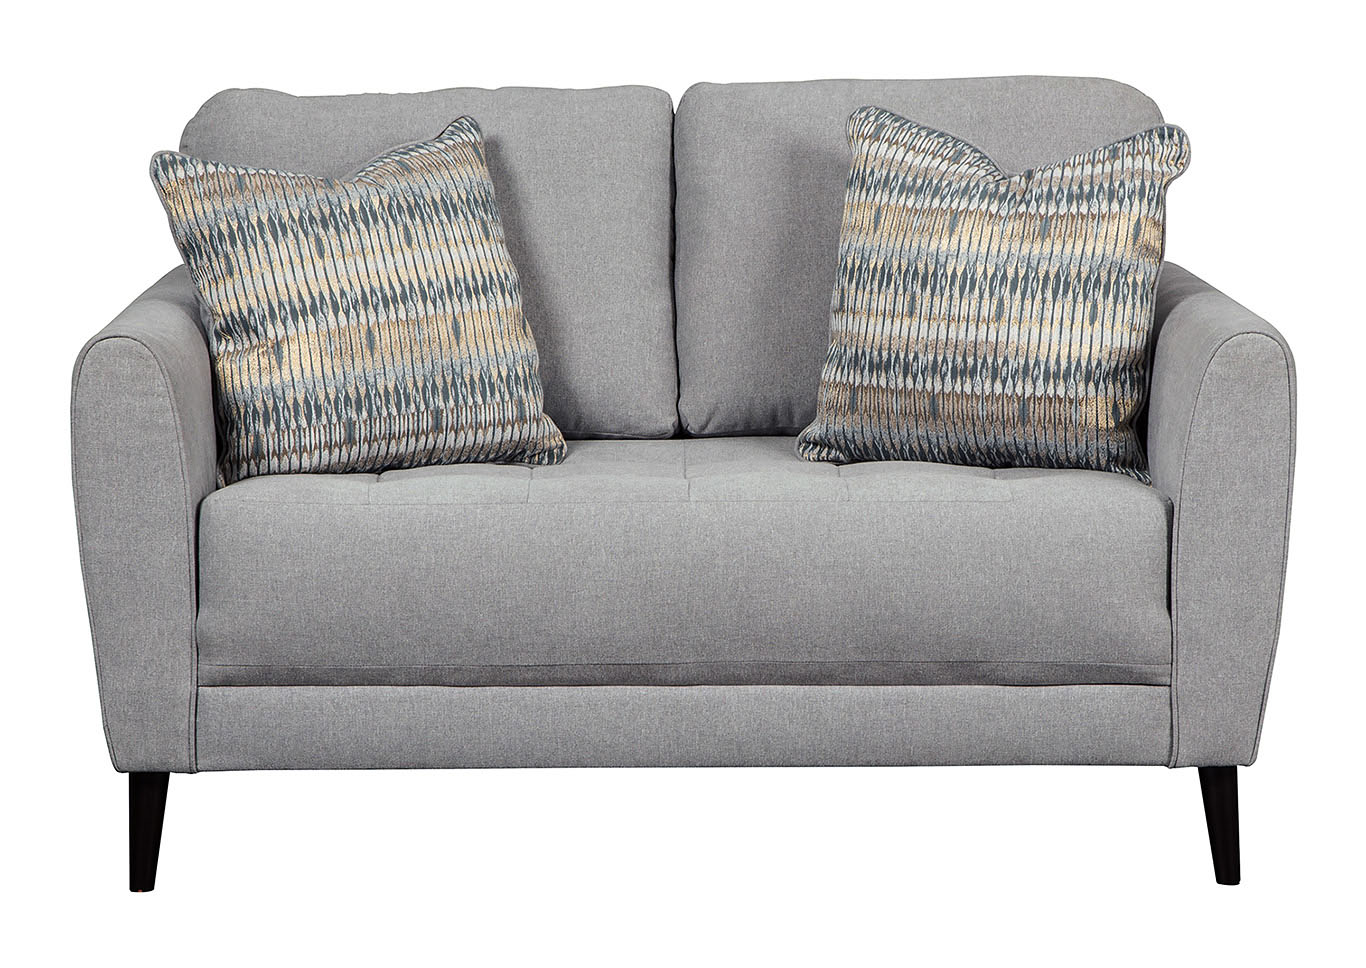 Beau Cardello Steel Loveseat,Signature Design By Ashley